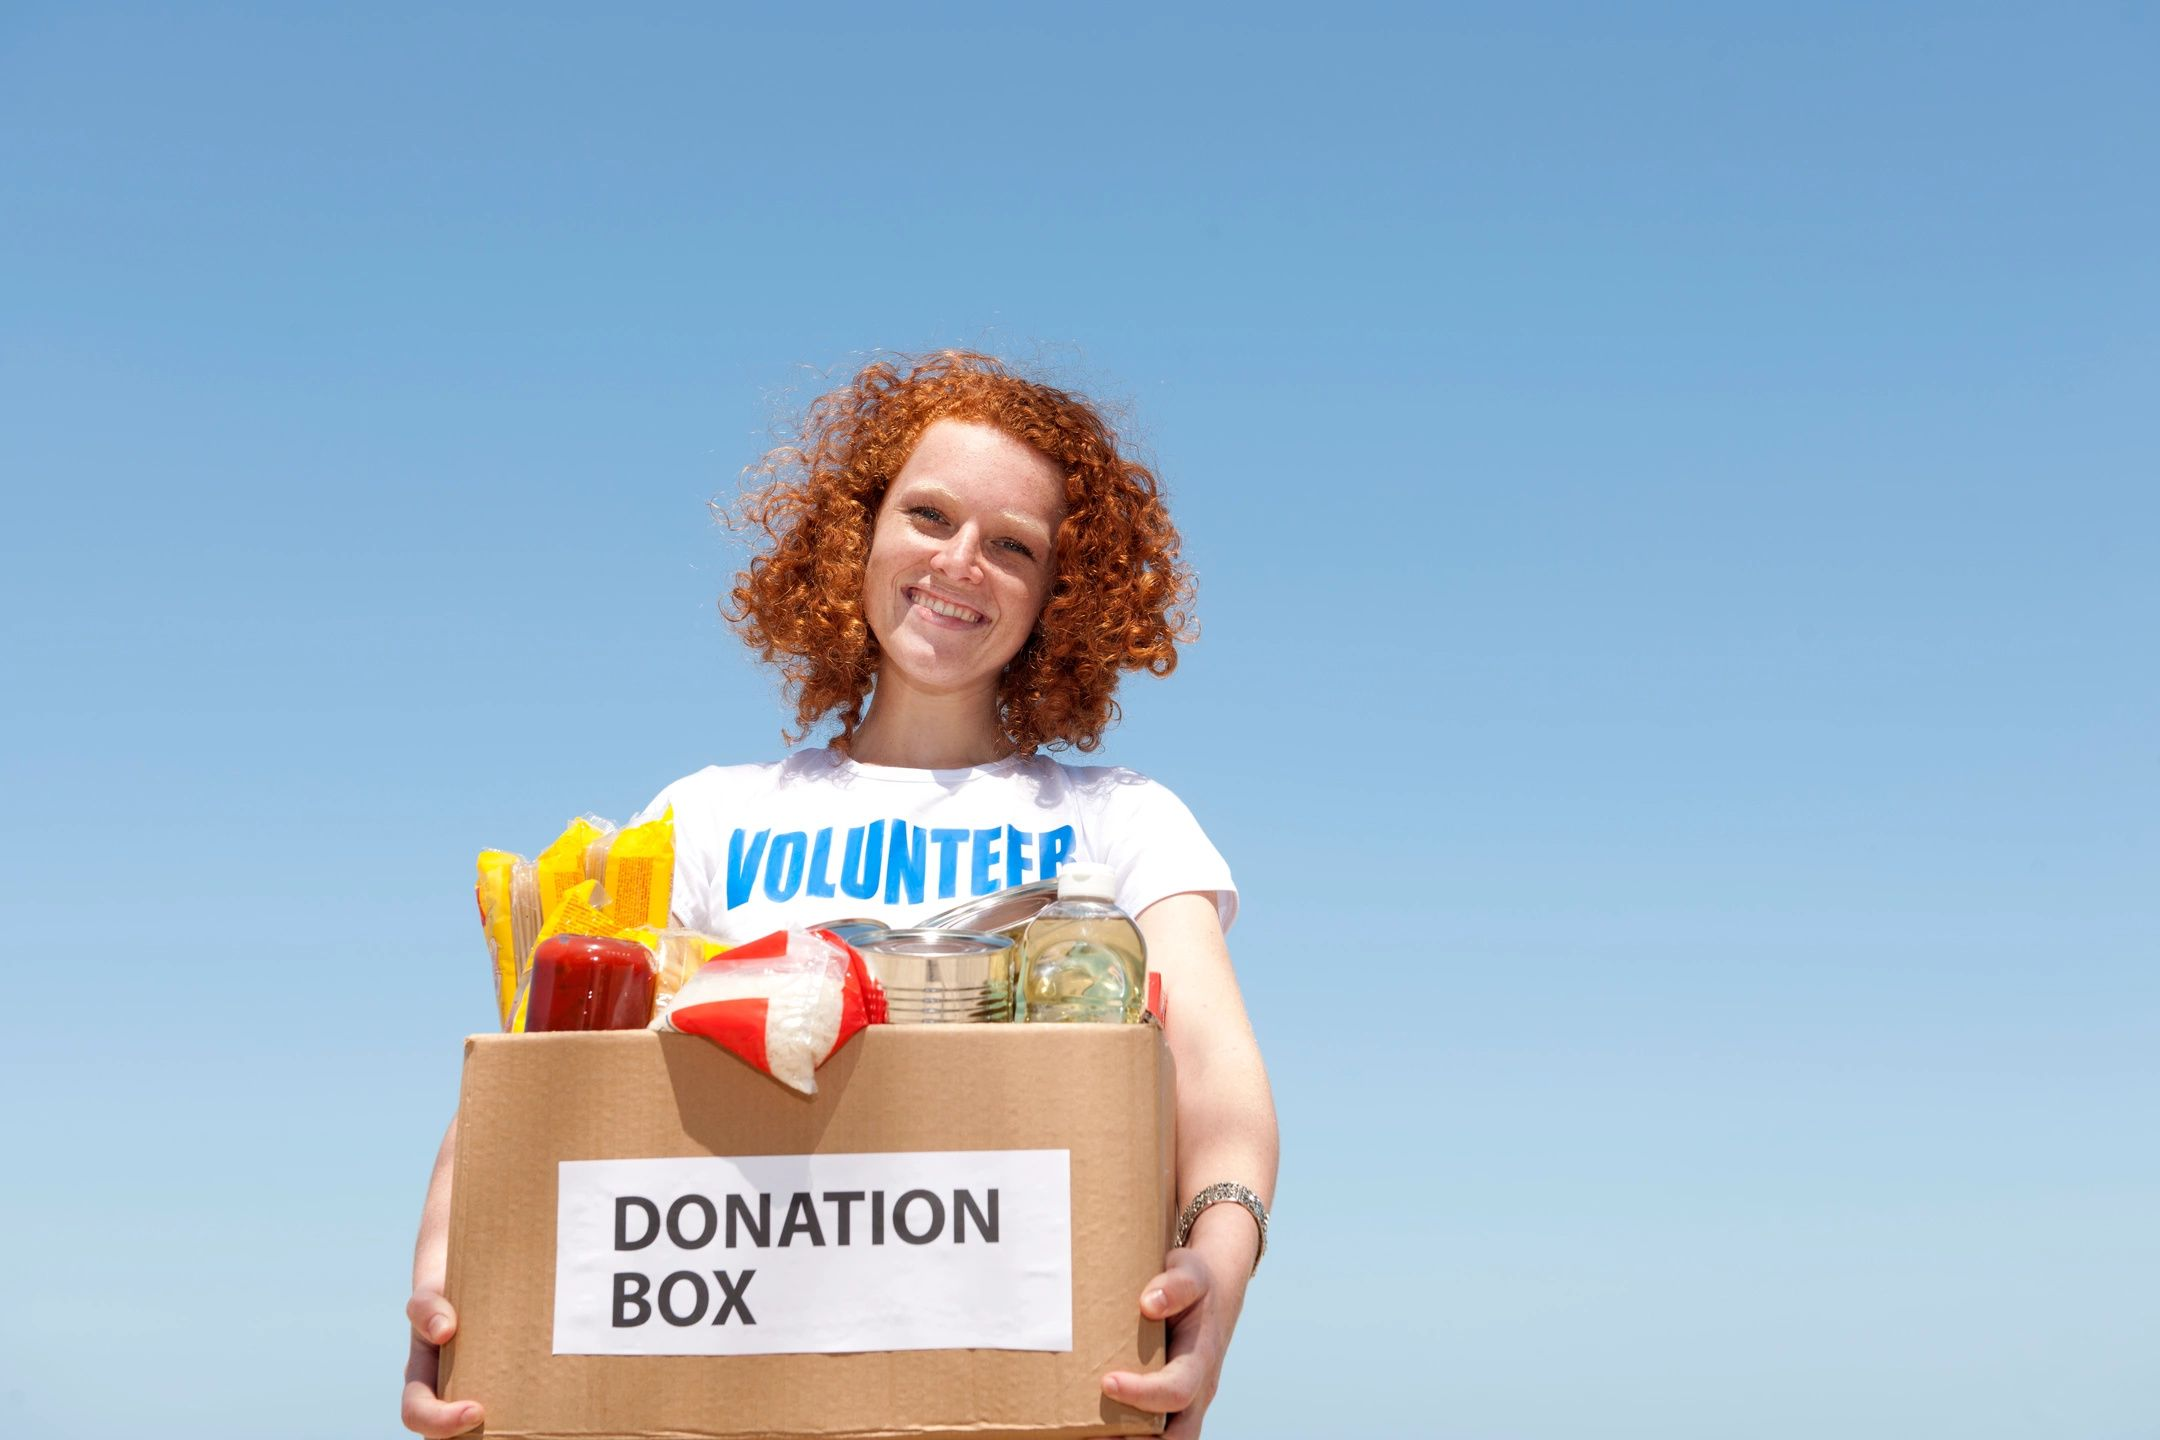 volunteer holding donation box